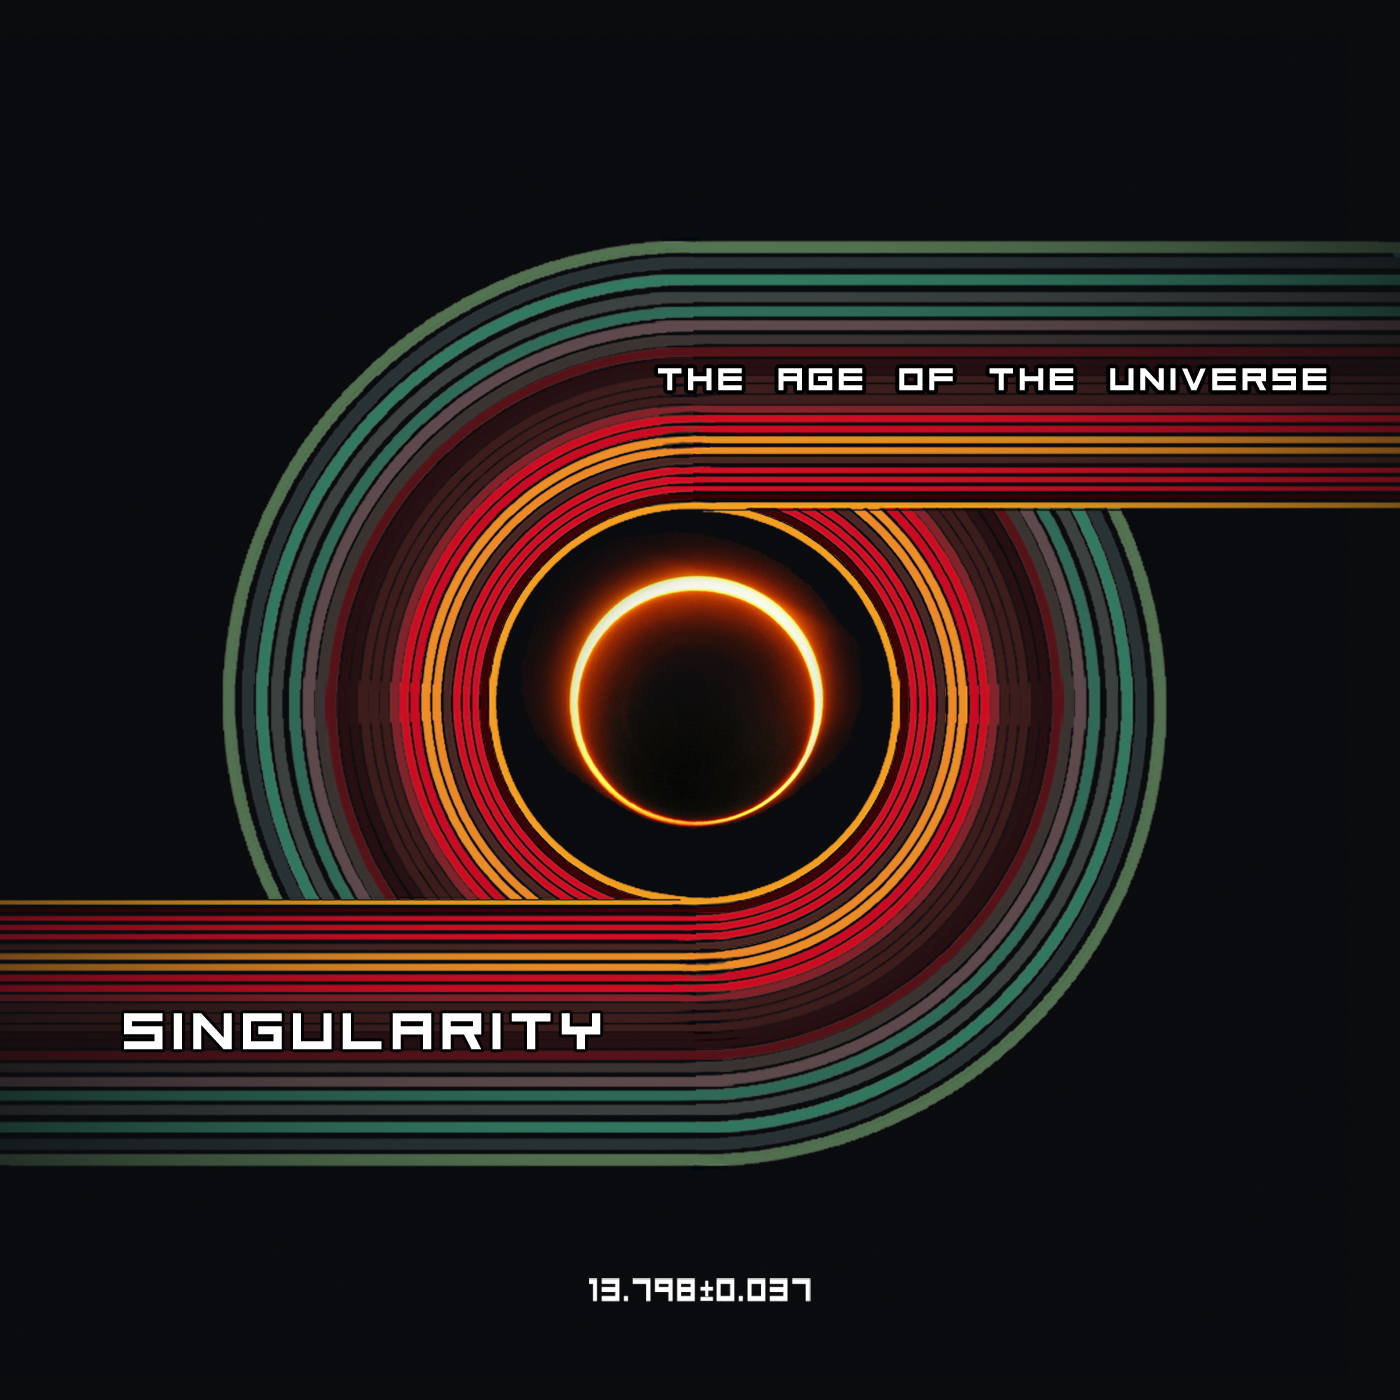 Tastes Like Rock - The Age of The Universe - Singularity Review